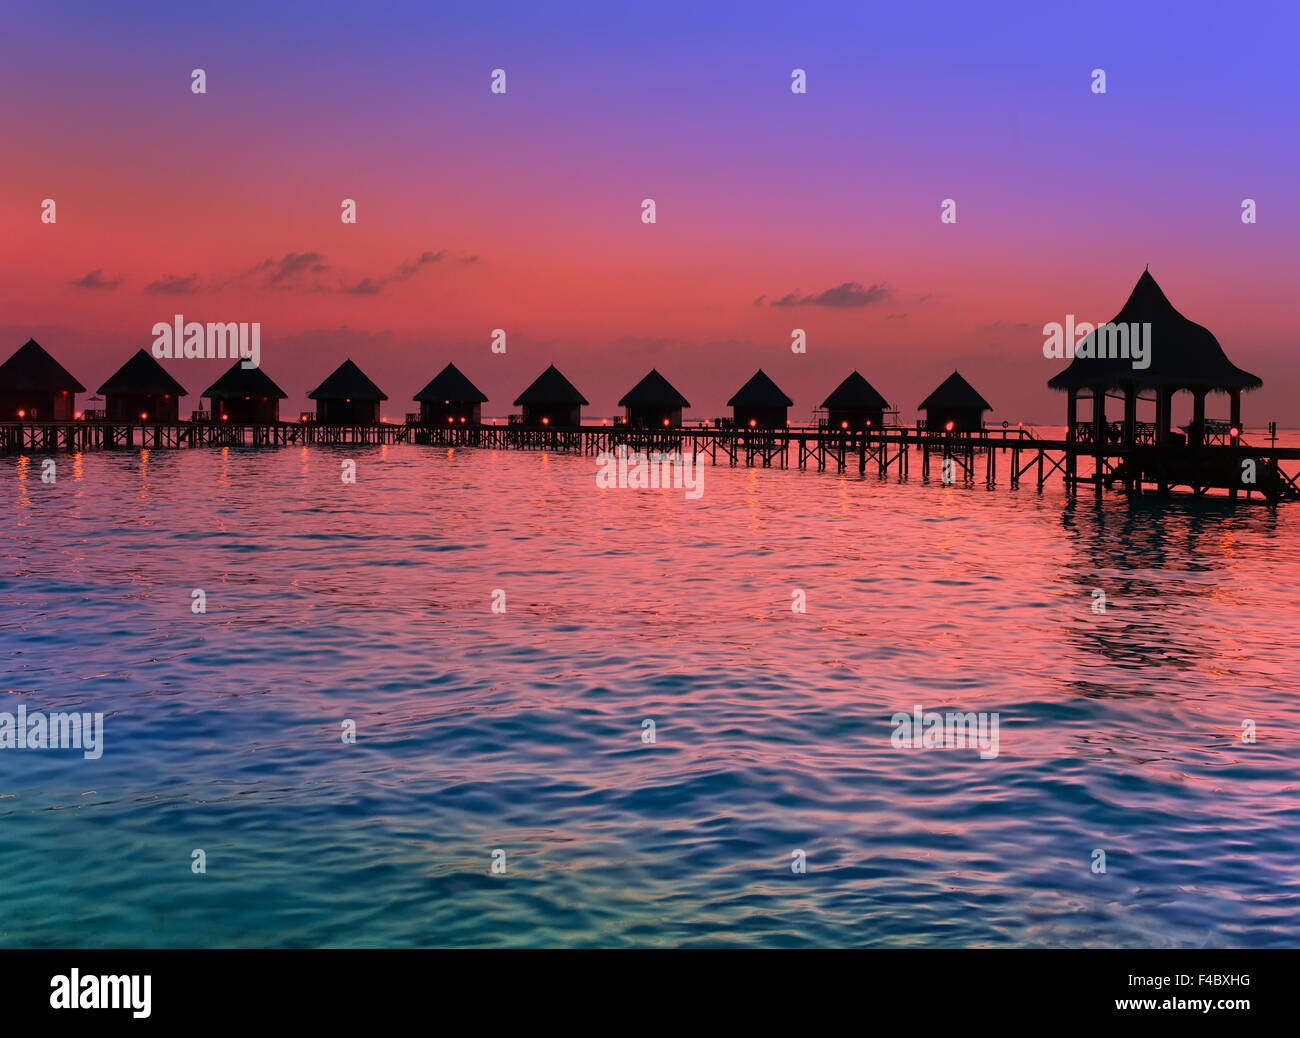 Island in ocean, Maldives.  Sunset. Stock Photo